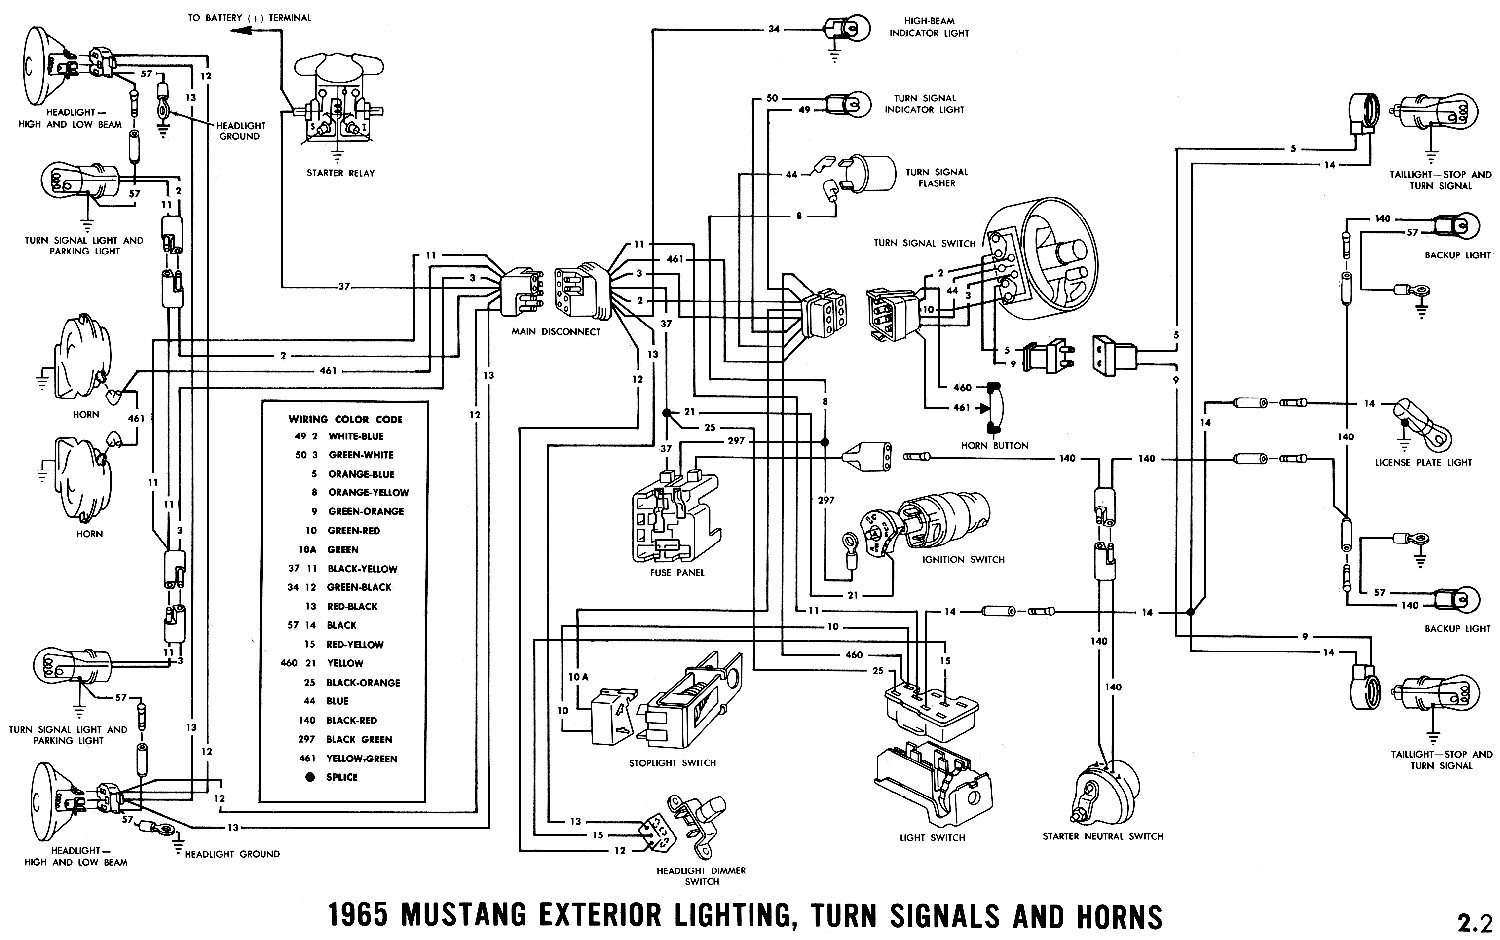 67 Mustang Wiring Diagram Charge Light Third Level Ke Harness 69 57 Bel Air 1969 Ford